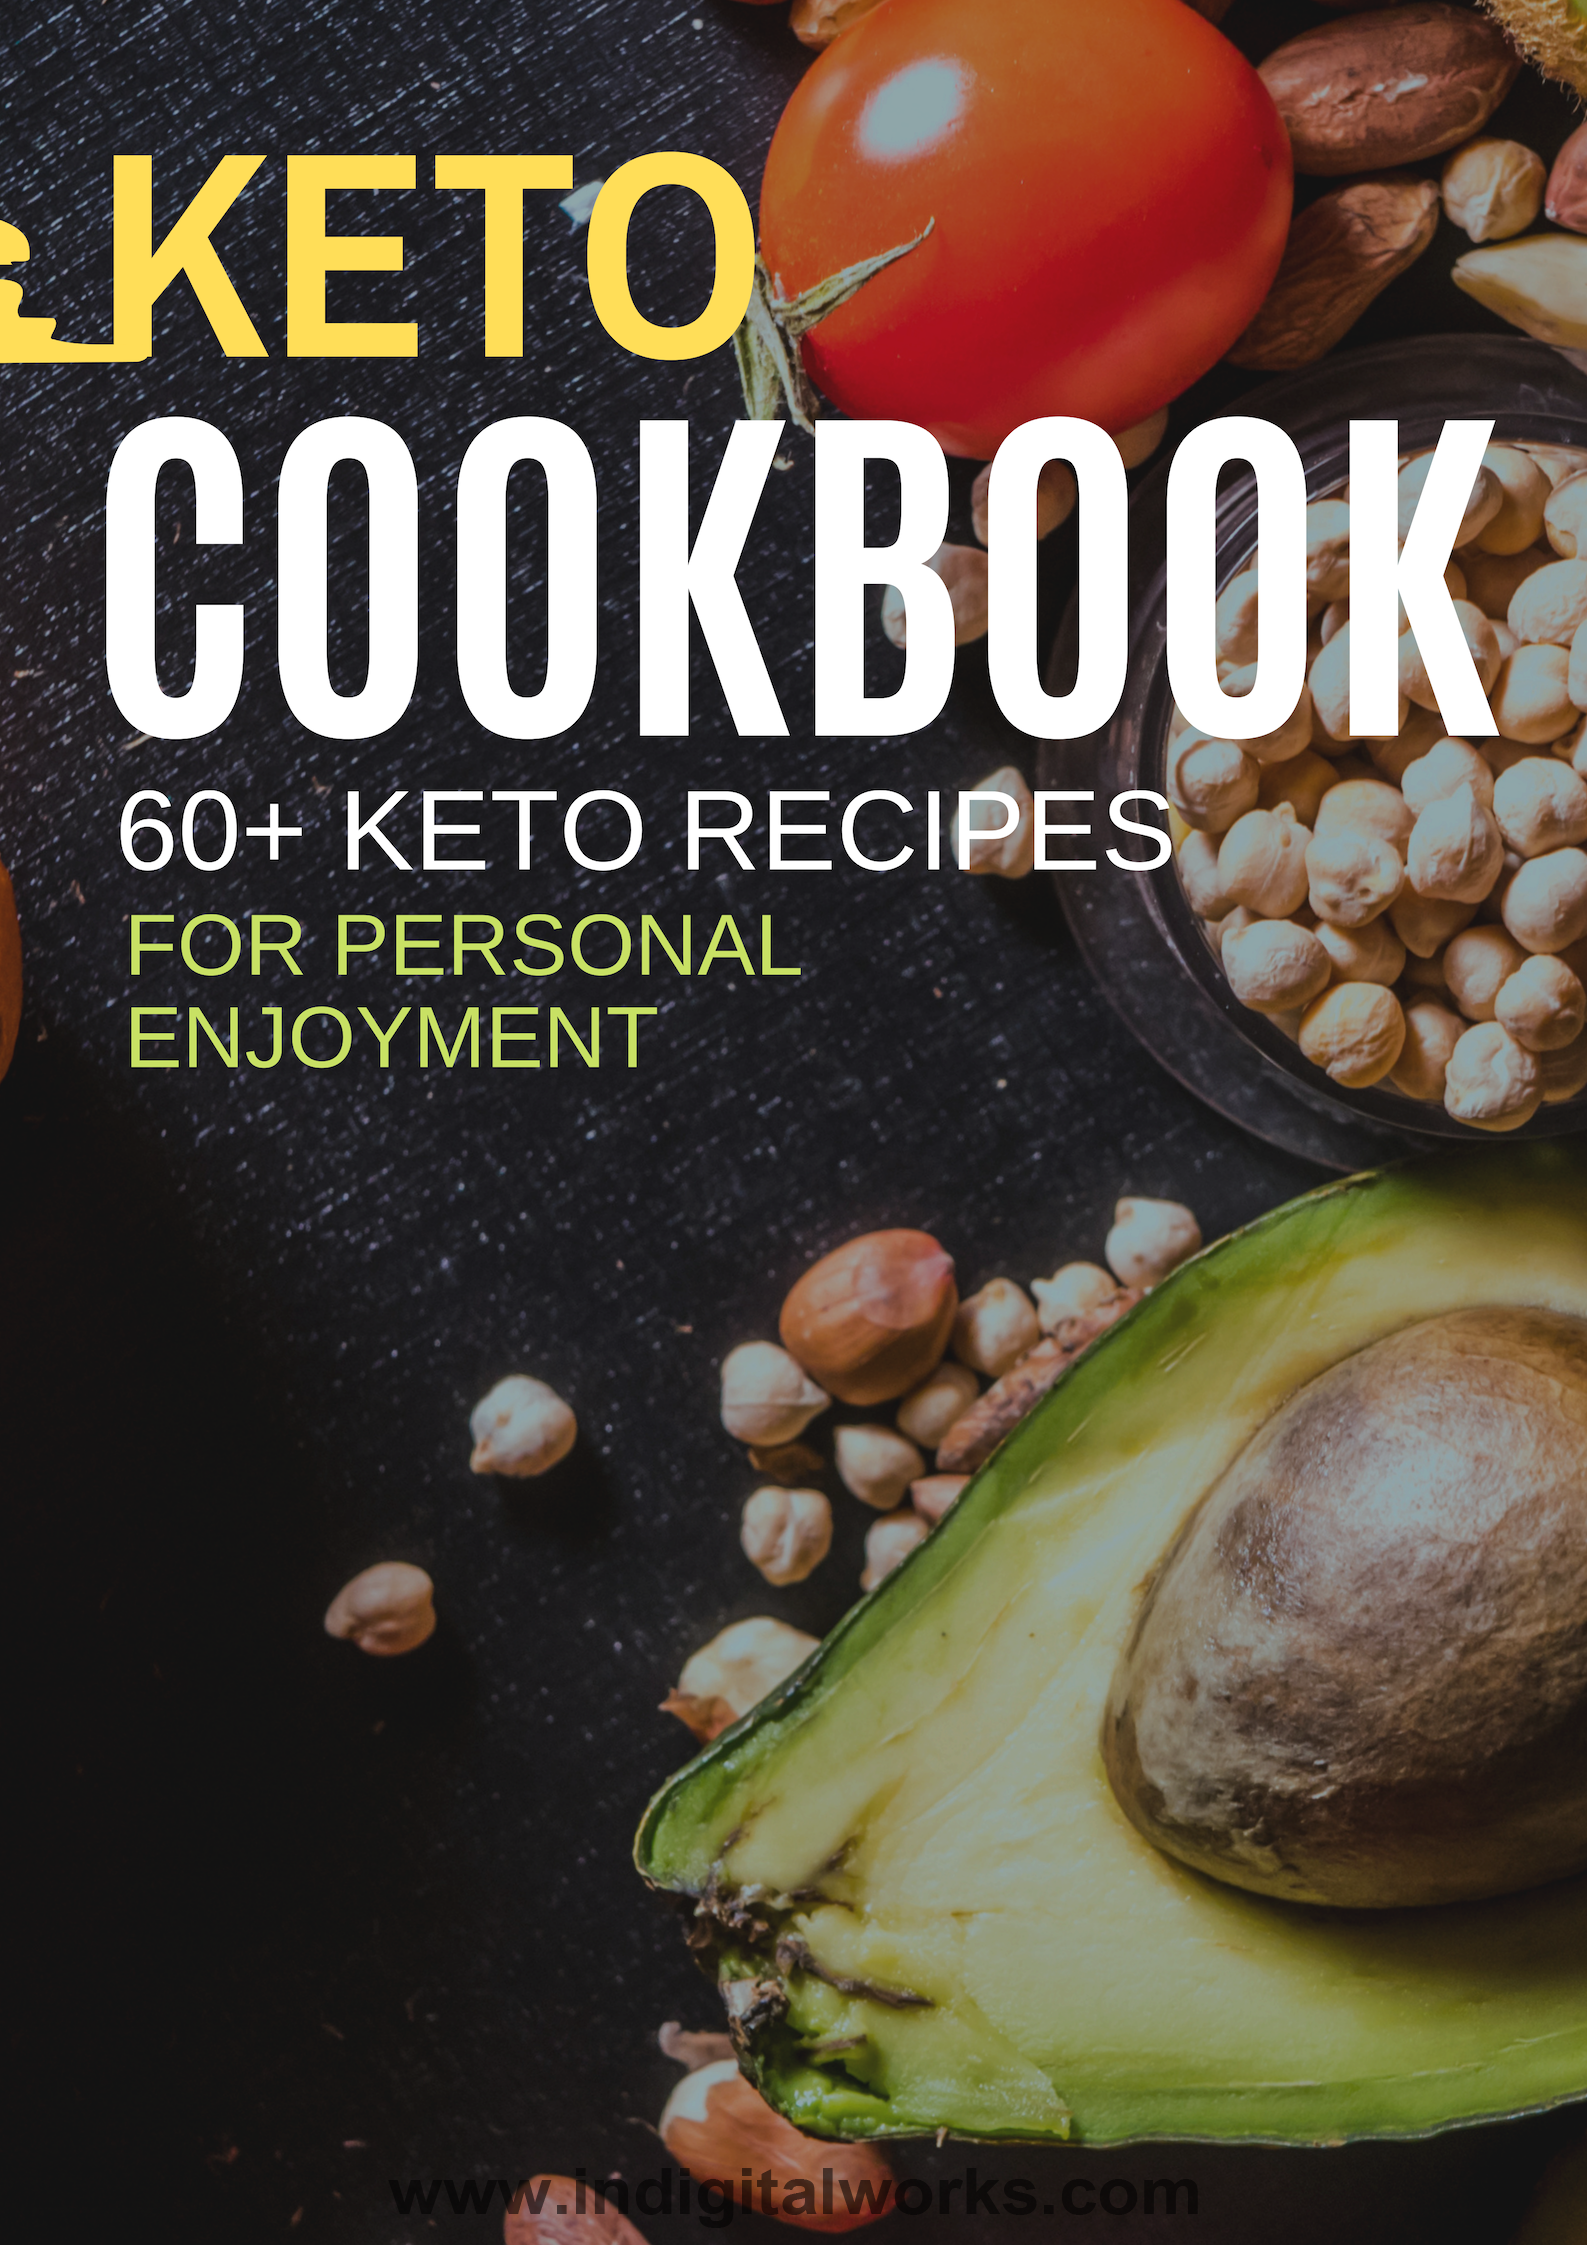 Keto Diet Cookbook (60+ Keto Recipes For Personal Enjoyment) Ebook's Ebook Image